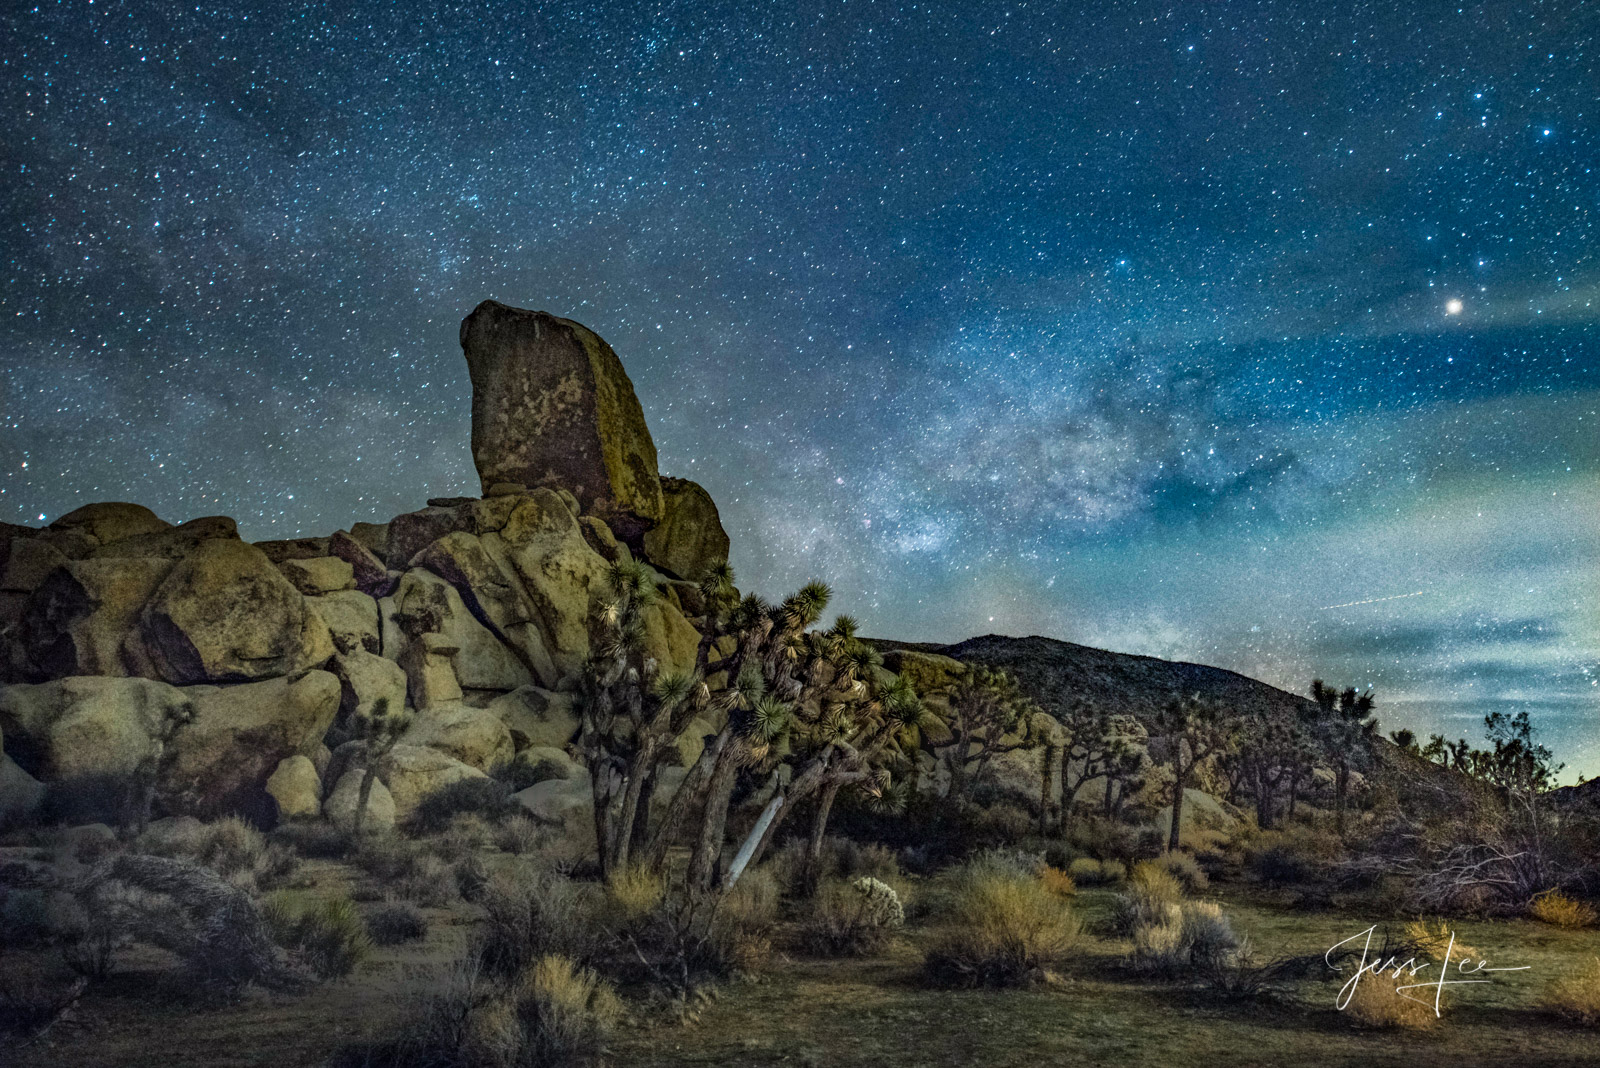 Limited Edition of 50 Exclusive high-resolution Museum Quality Fine Art Prints of the Night Sky. Photos copyright © Jess Lee...